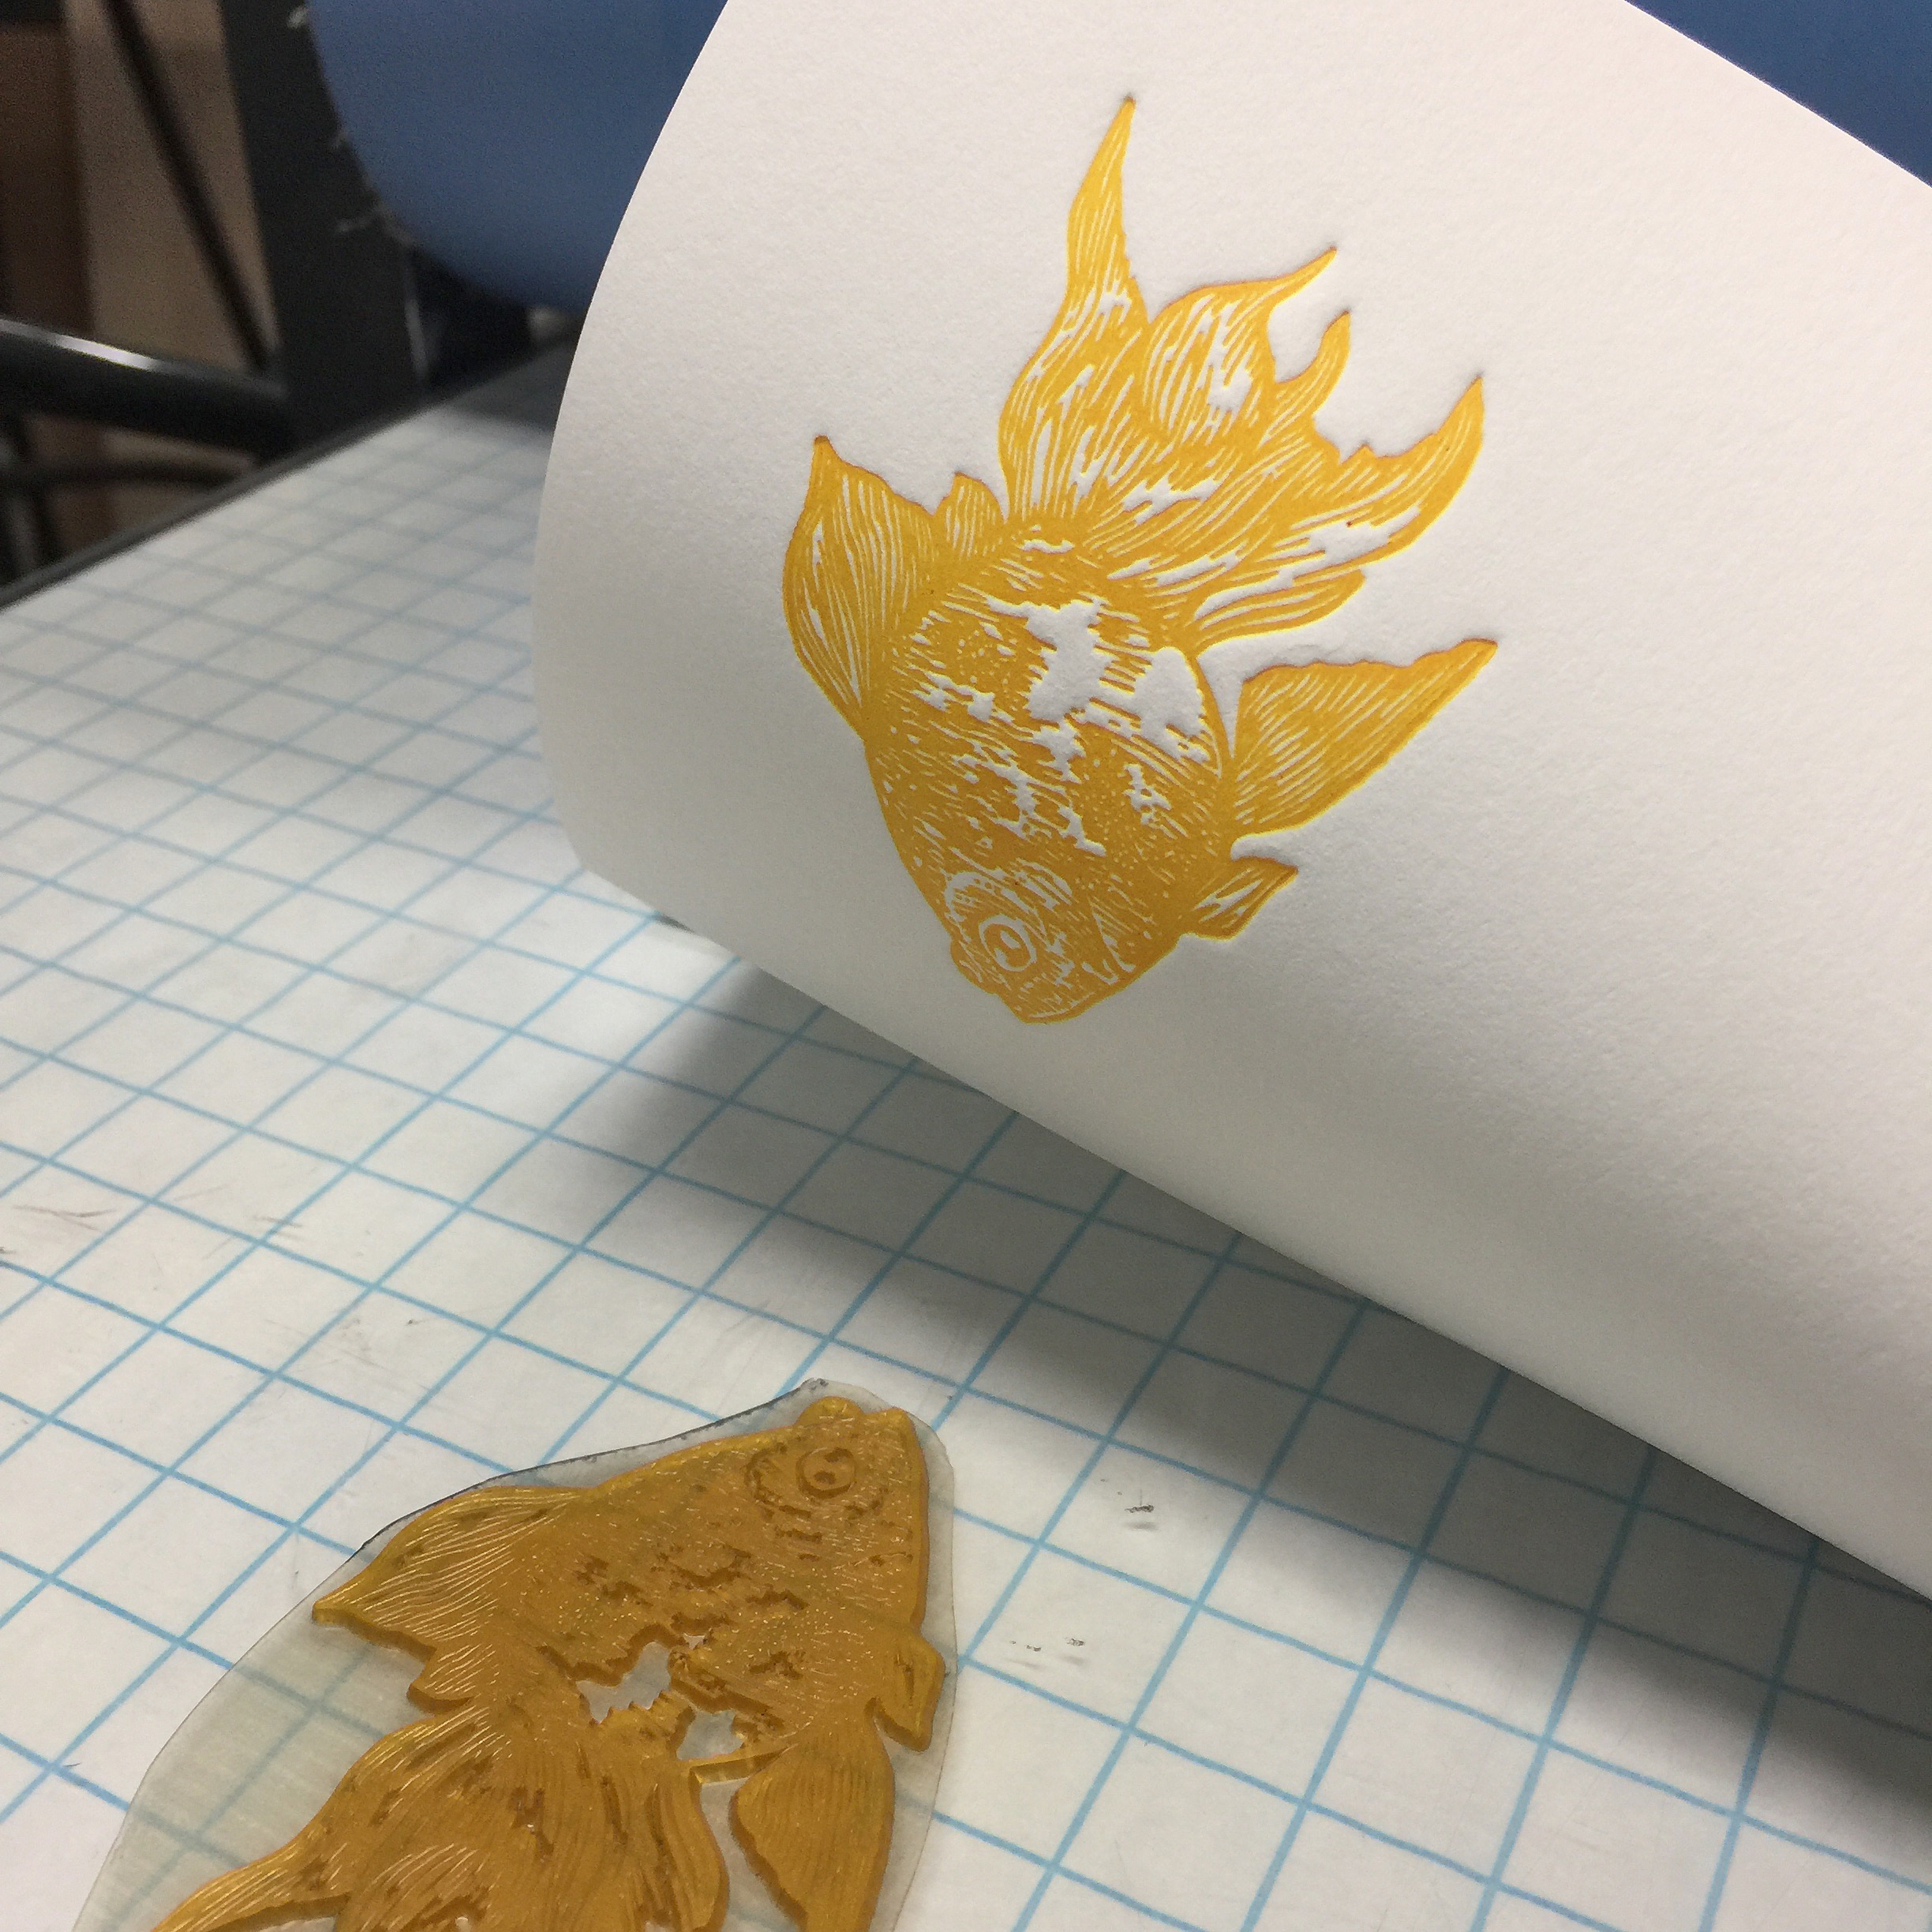 Printed in a warm yellow.